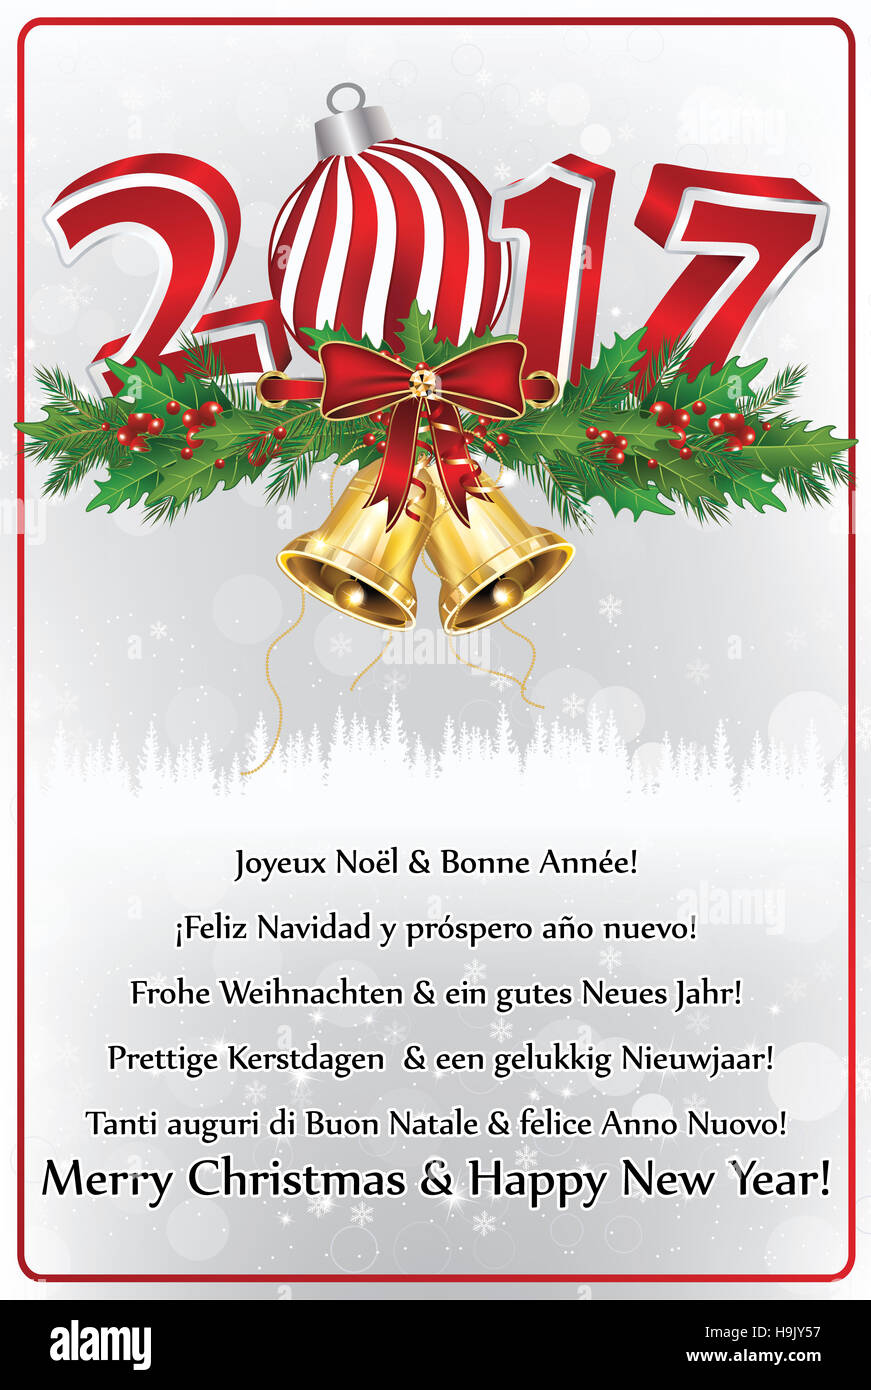 New year greeting card 2017 in many languages text translation new year greeting card 2017 in many languages text translation merry christmas and happy new year in frenchgermandutch m4hsunfo